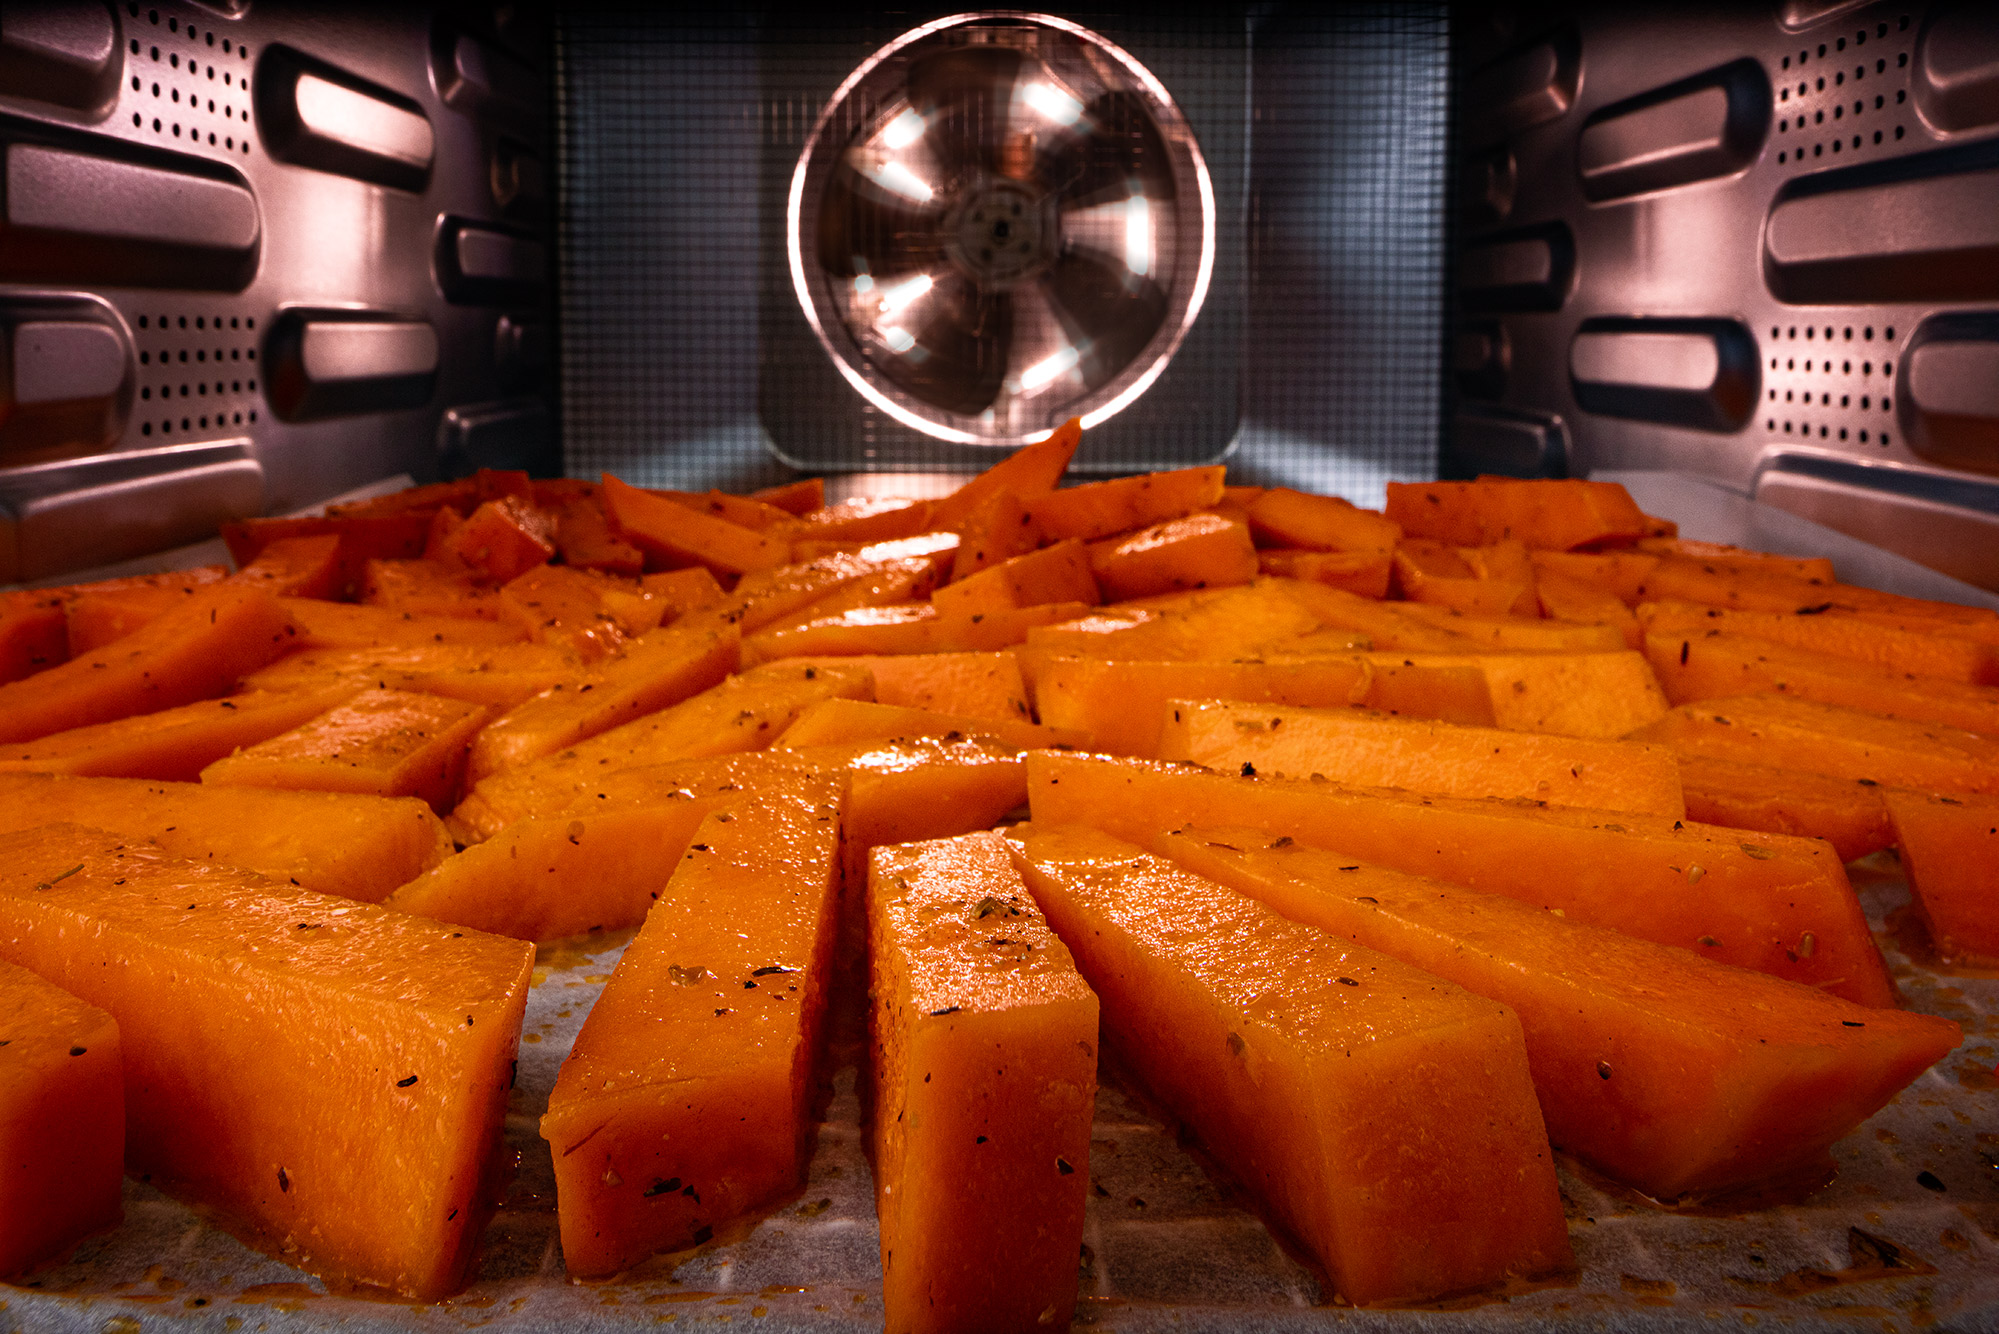 Second step for making baked pumpkin fries.In chunks cut pumpkin pieces laid out on backing paper in an oven.